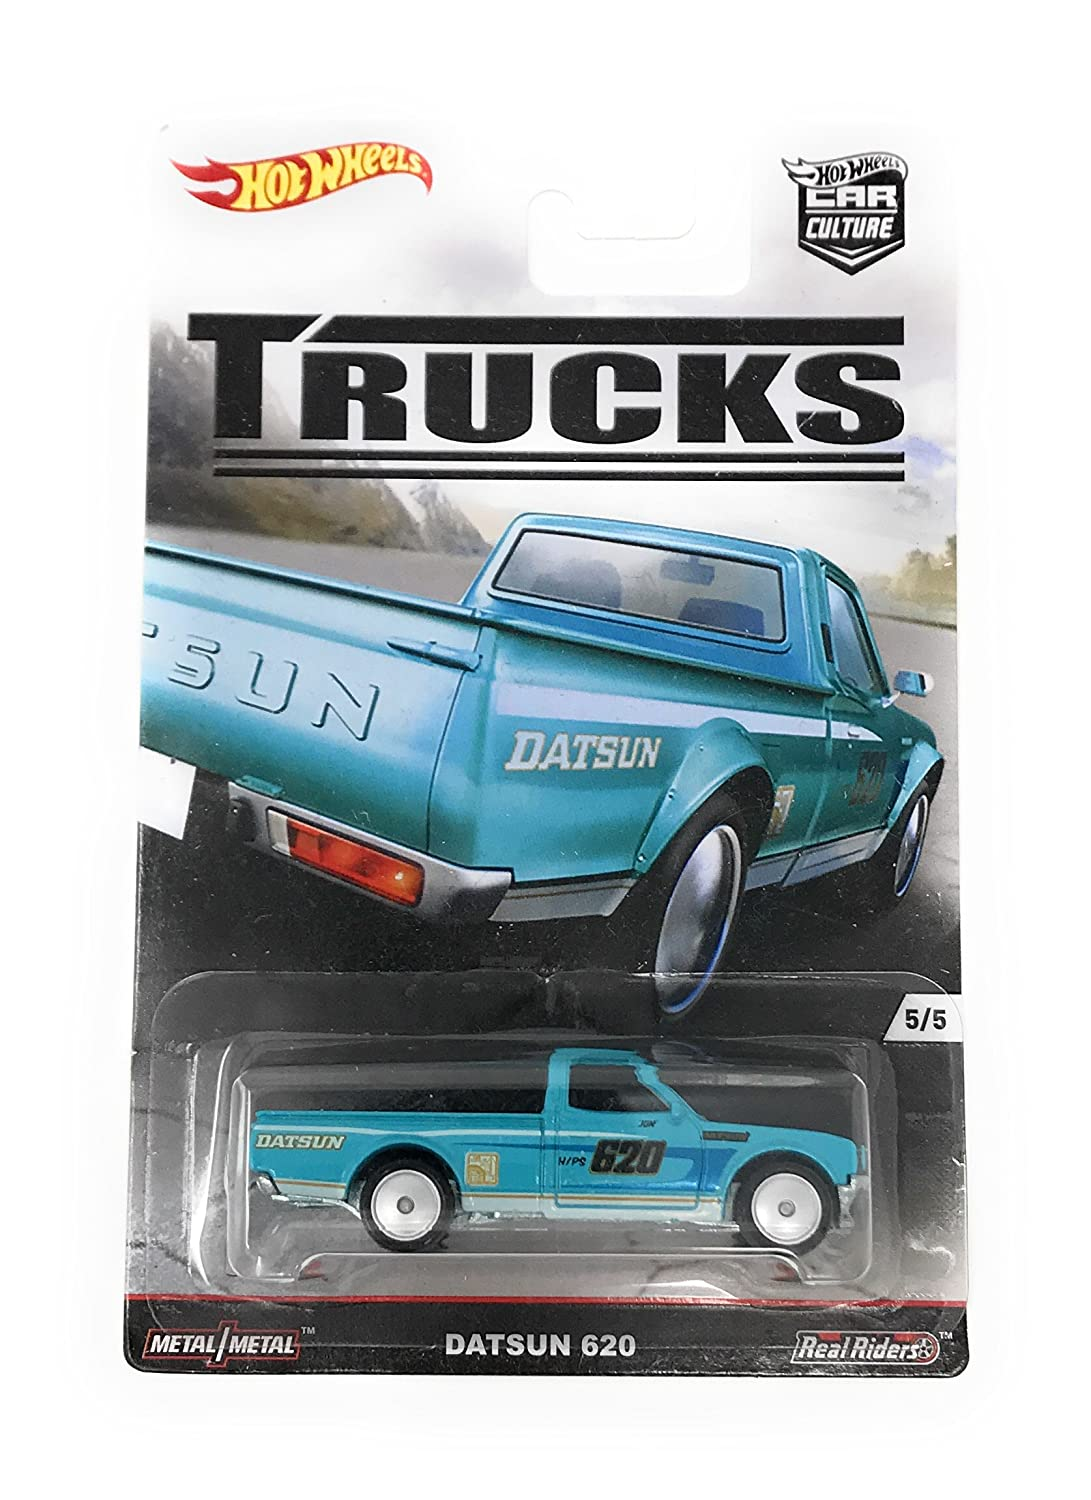 76 datsun pickups for sale the datsun 620 is one of the most beautiful - Amazon Com Hot Wheels Car Culture Trucks Datsun 620 Pickup 5 5 Teal Toys Games